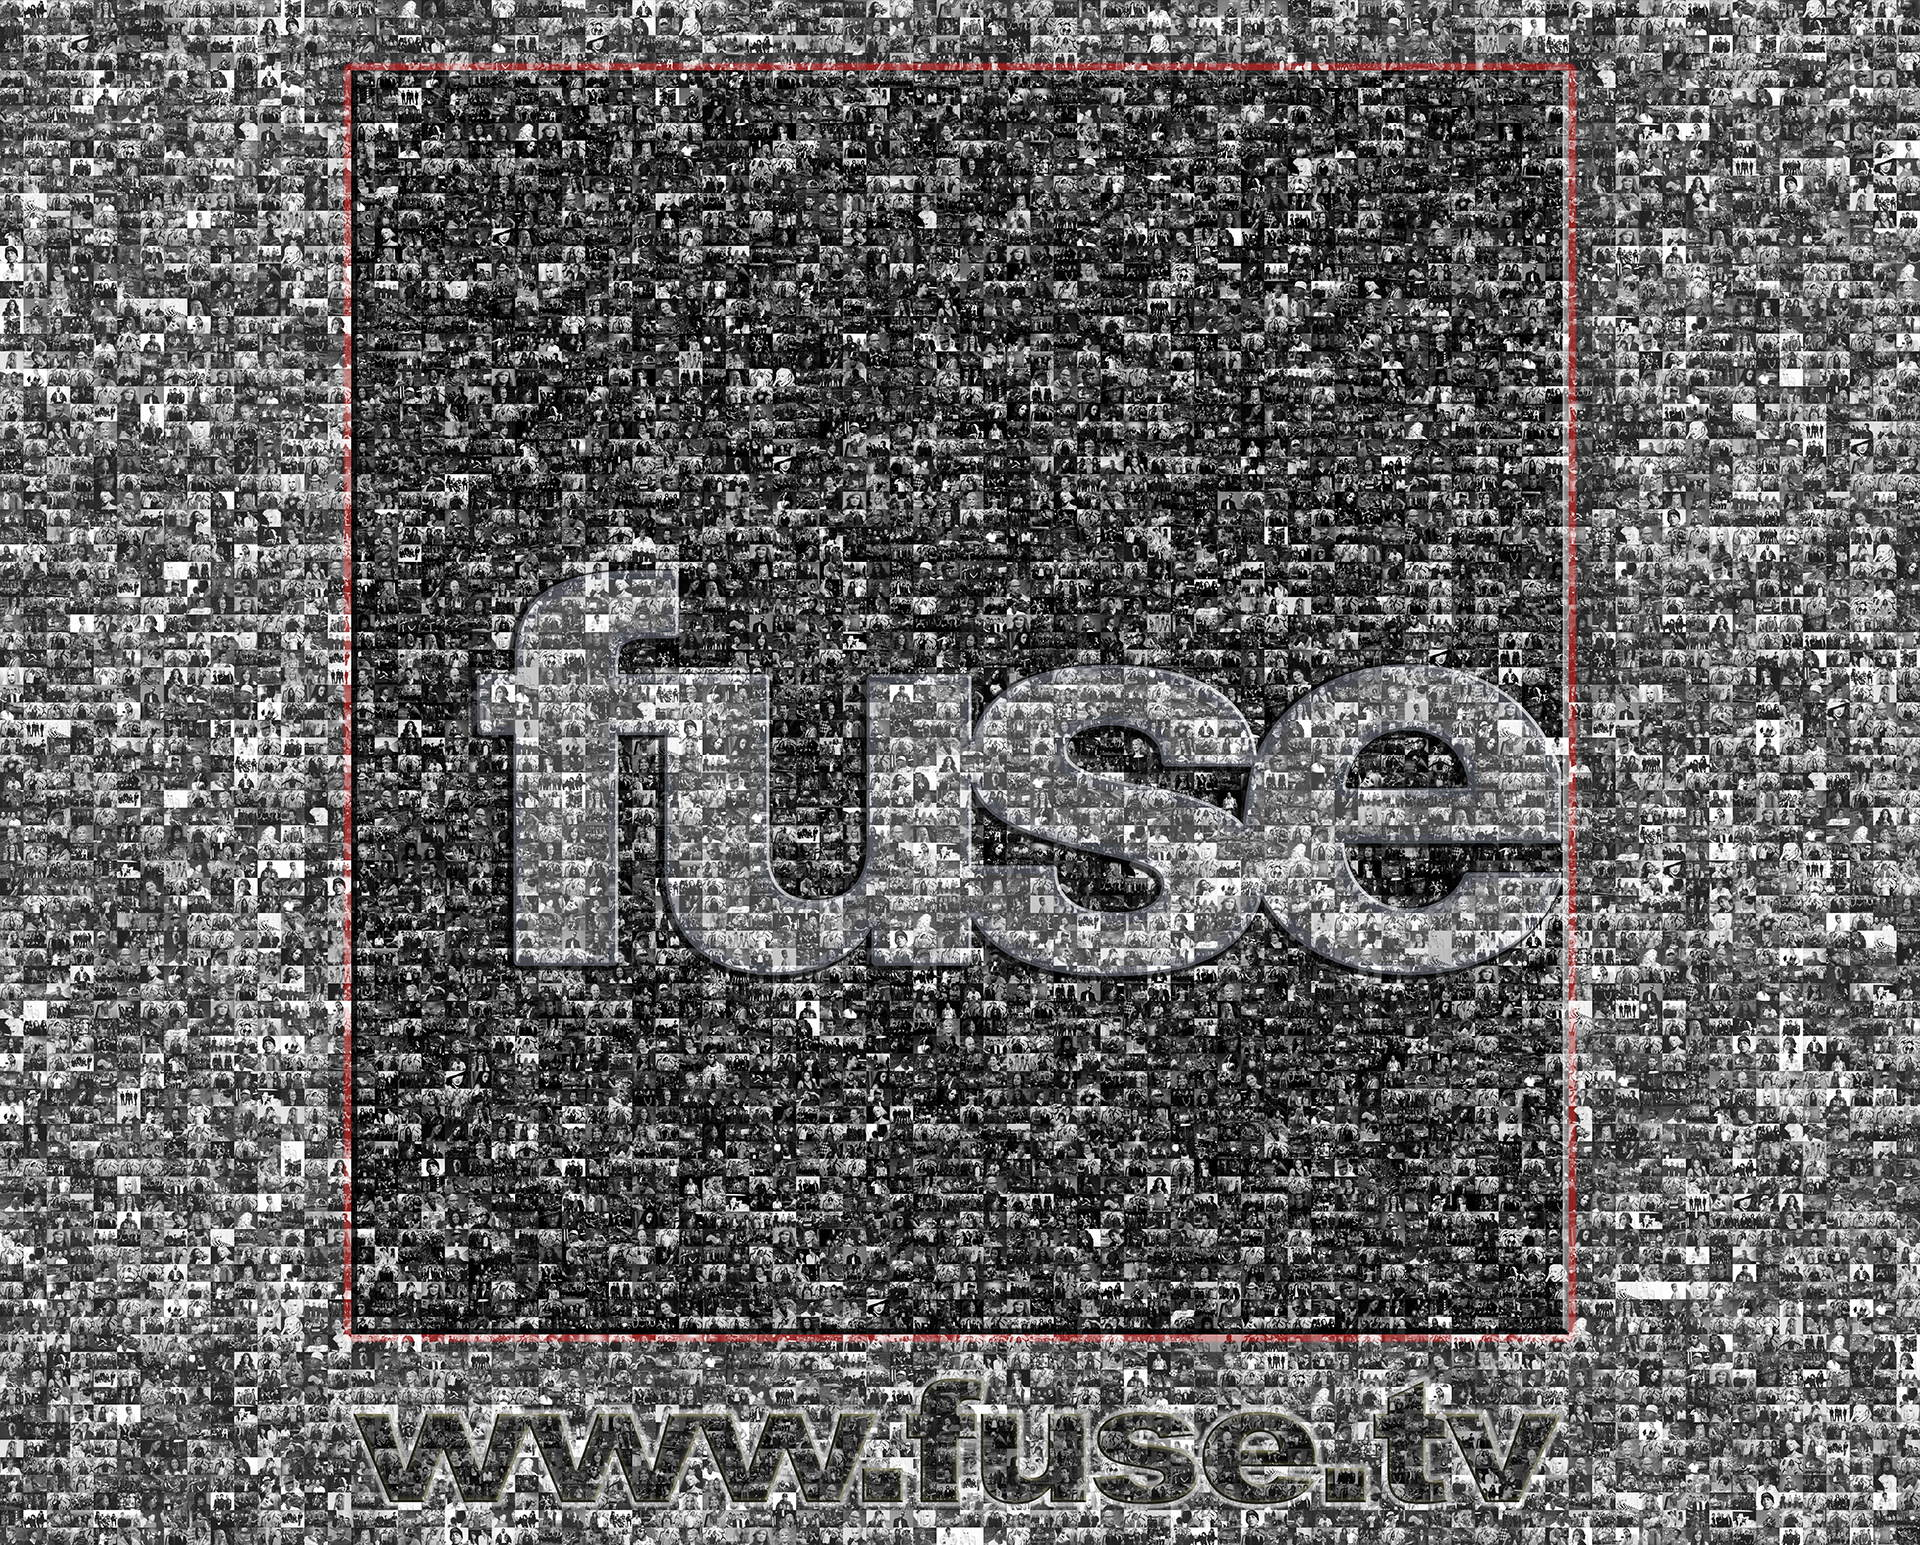 photo mosaic This 8ft x 10ft banner was created photos using thousands of photos from musical artist appearances on FuseTV.